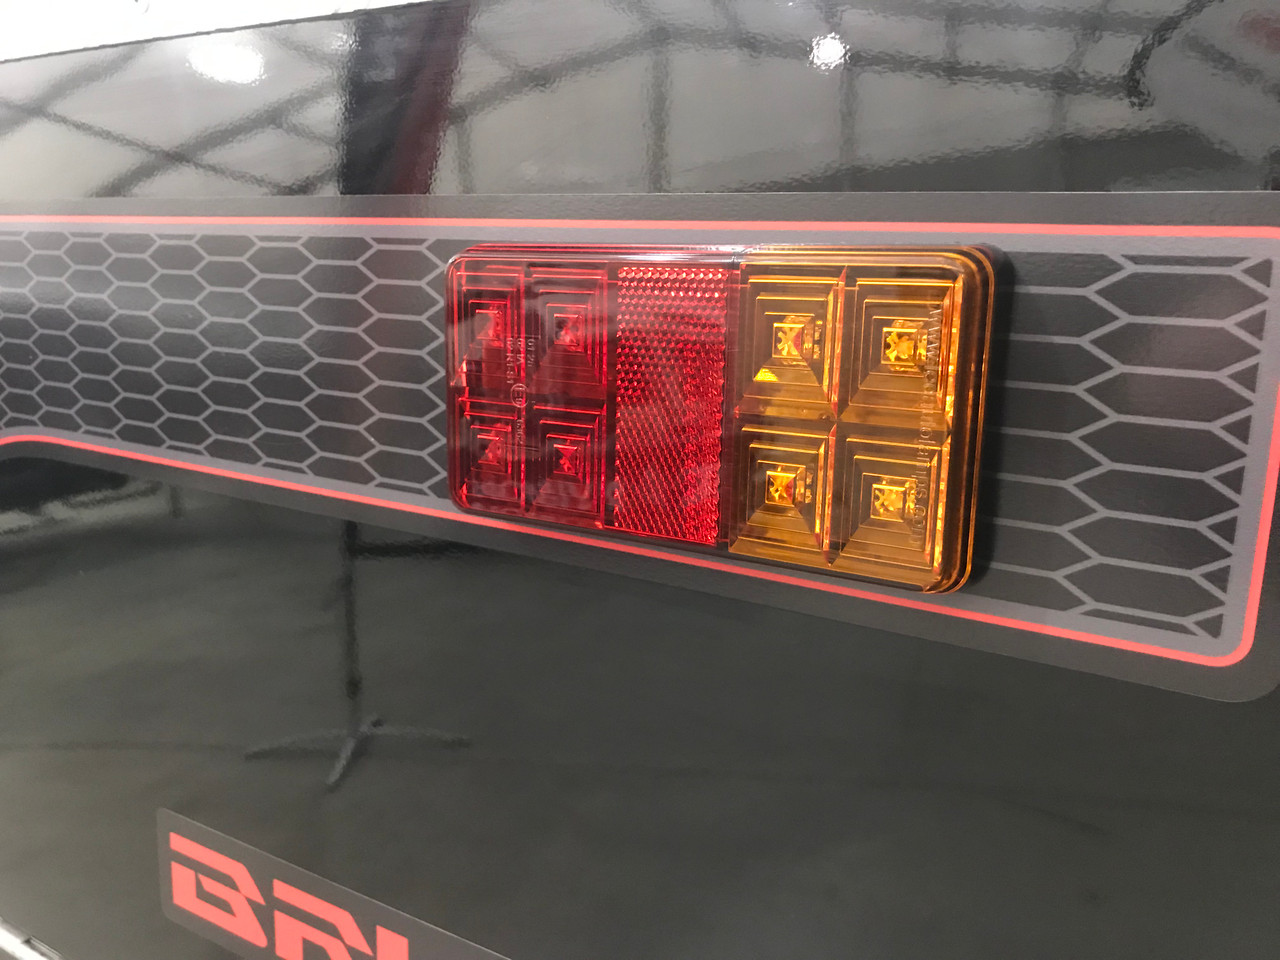 H155BARLP2/6 - Small Trailer Combination Tail Lights. Stop, Tail, Indicator Light, with Reflector and Licence Plate Light. 12v Blister Twin Pack 6M Trailer Kit. LED Auto Lamps. Ultimate LED.